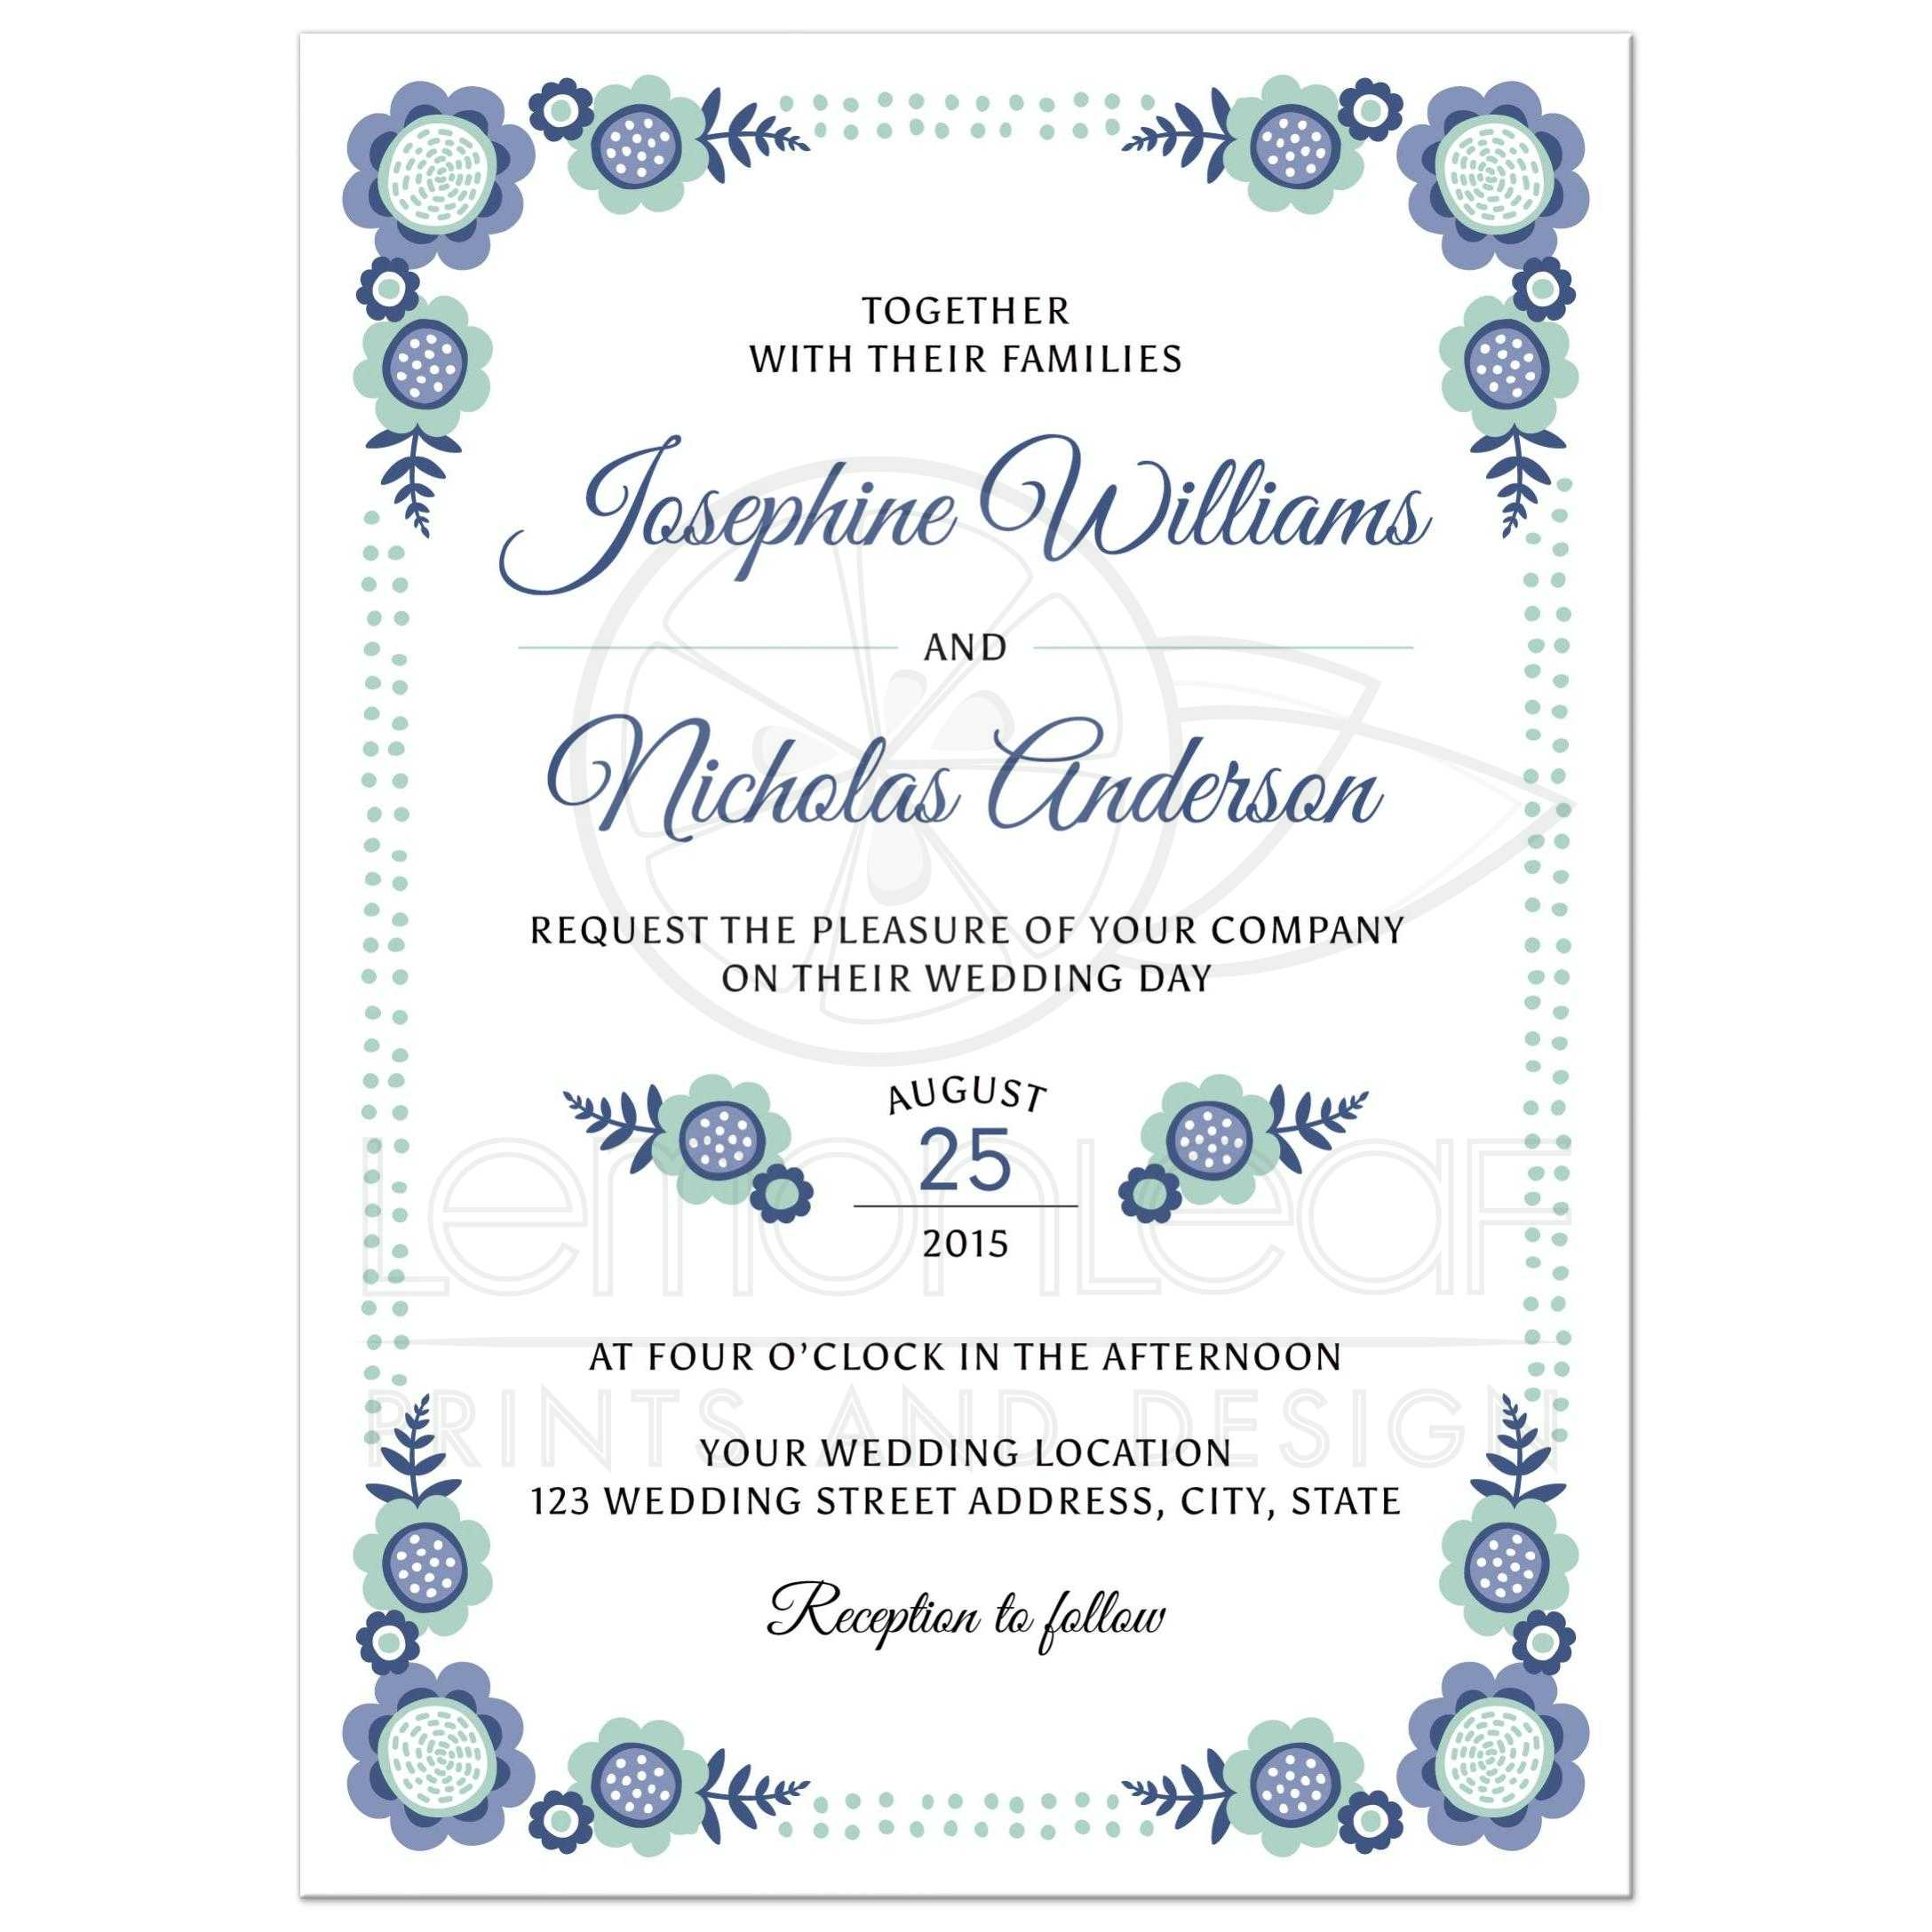 Blue bloom wedding invitation with cute, whimsical flower corners